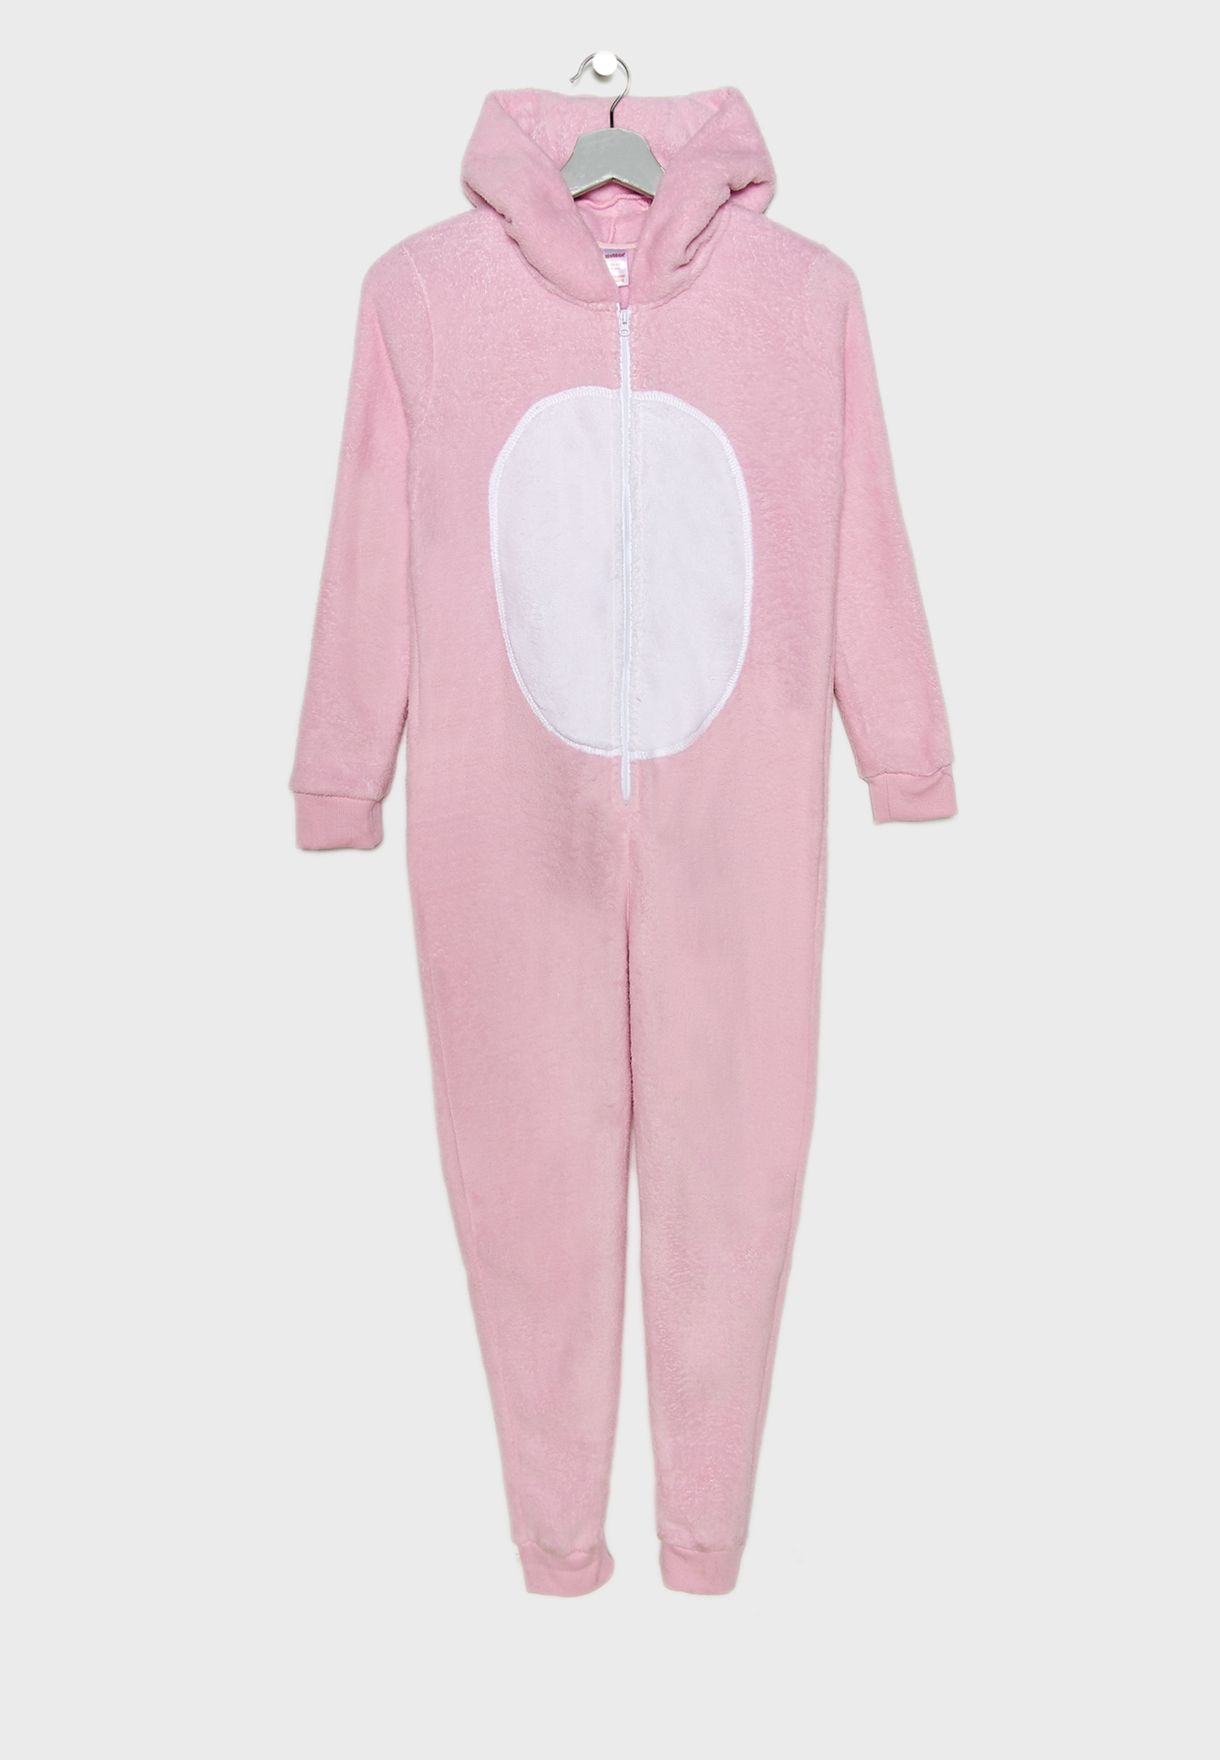 6218aea30993 Shop Outdoor pink Kids Bunny Onesie GJSH-33 for Kids in UAE ...